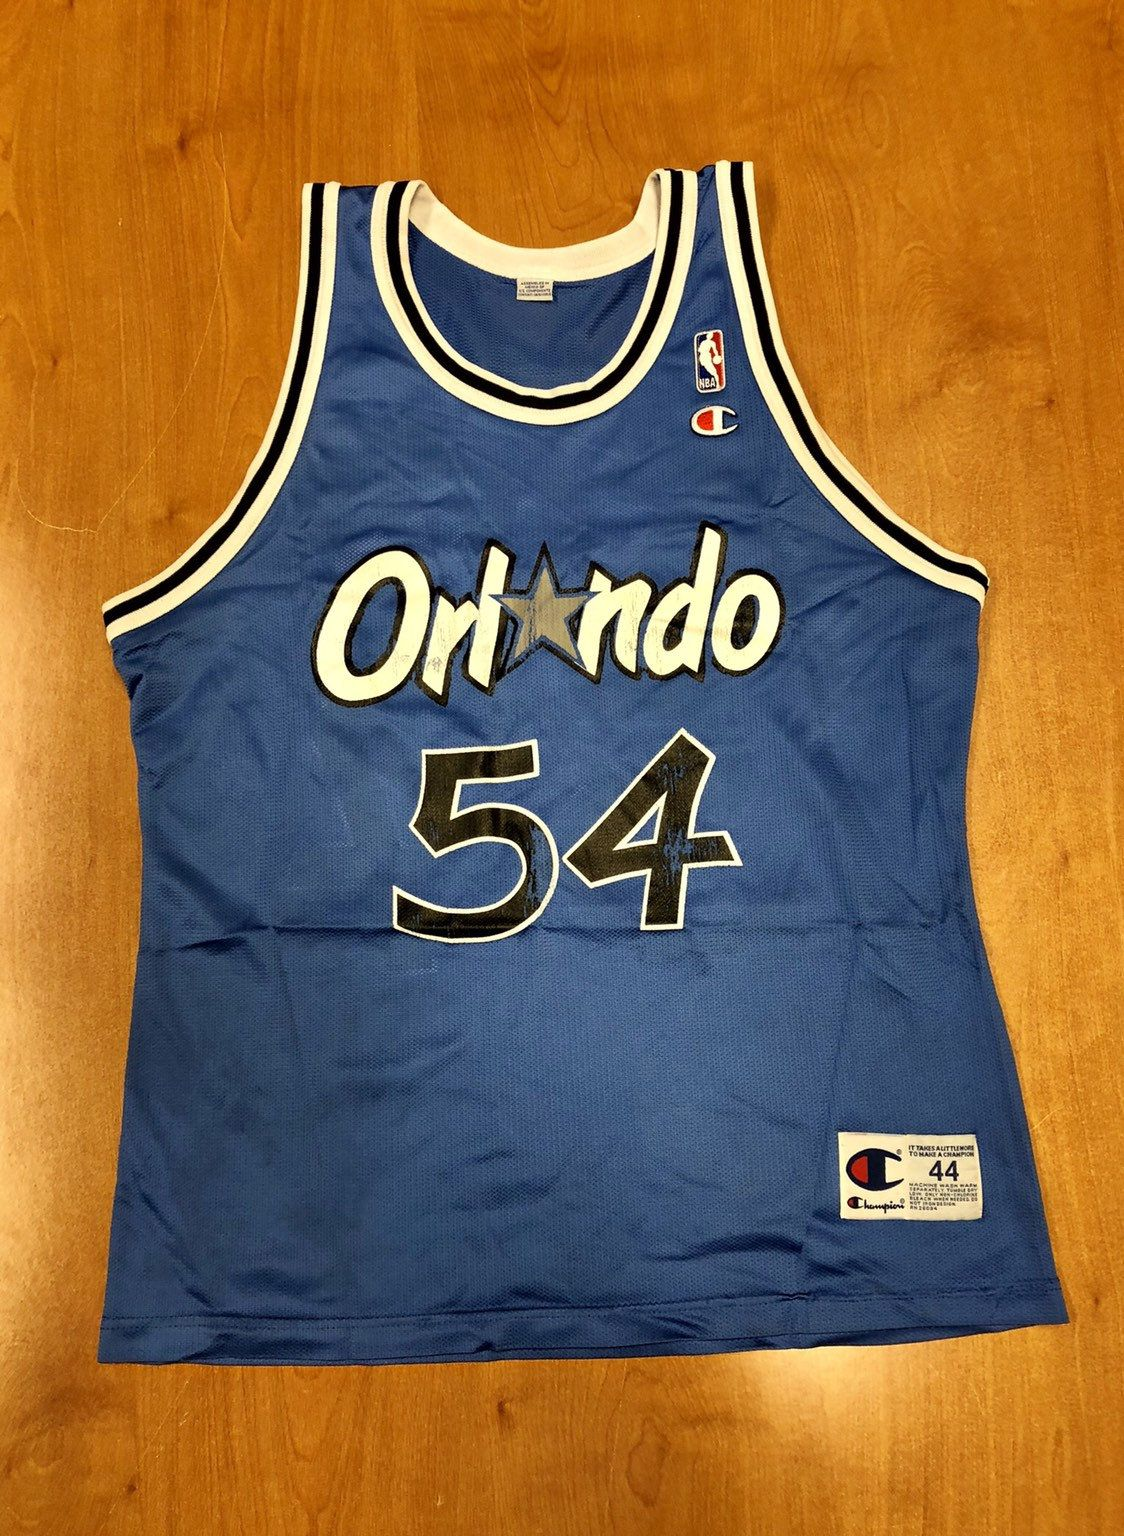 8d1ba158e05a Vintage 1995-1998 Horace Grant Orlando Magic Champion Jersey Size 44 nba  shaquille o neal darrell armstrong shirt hat penny hardaway bulls by ...